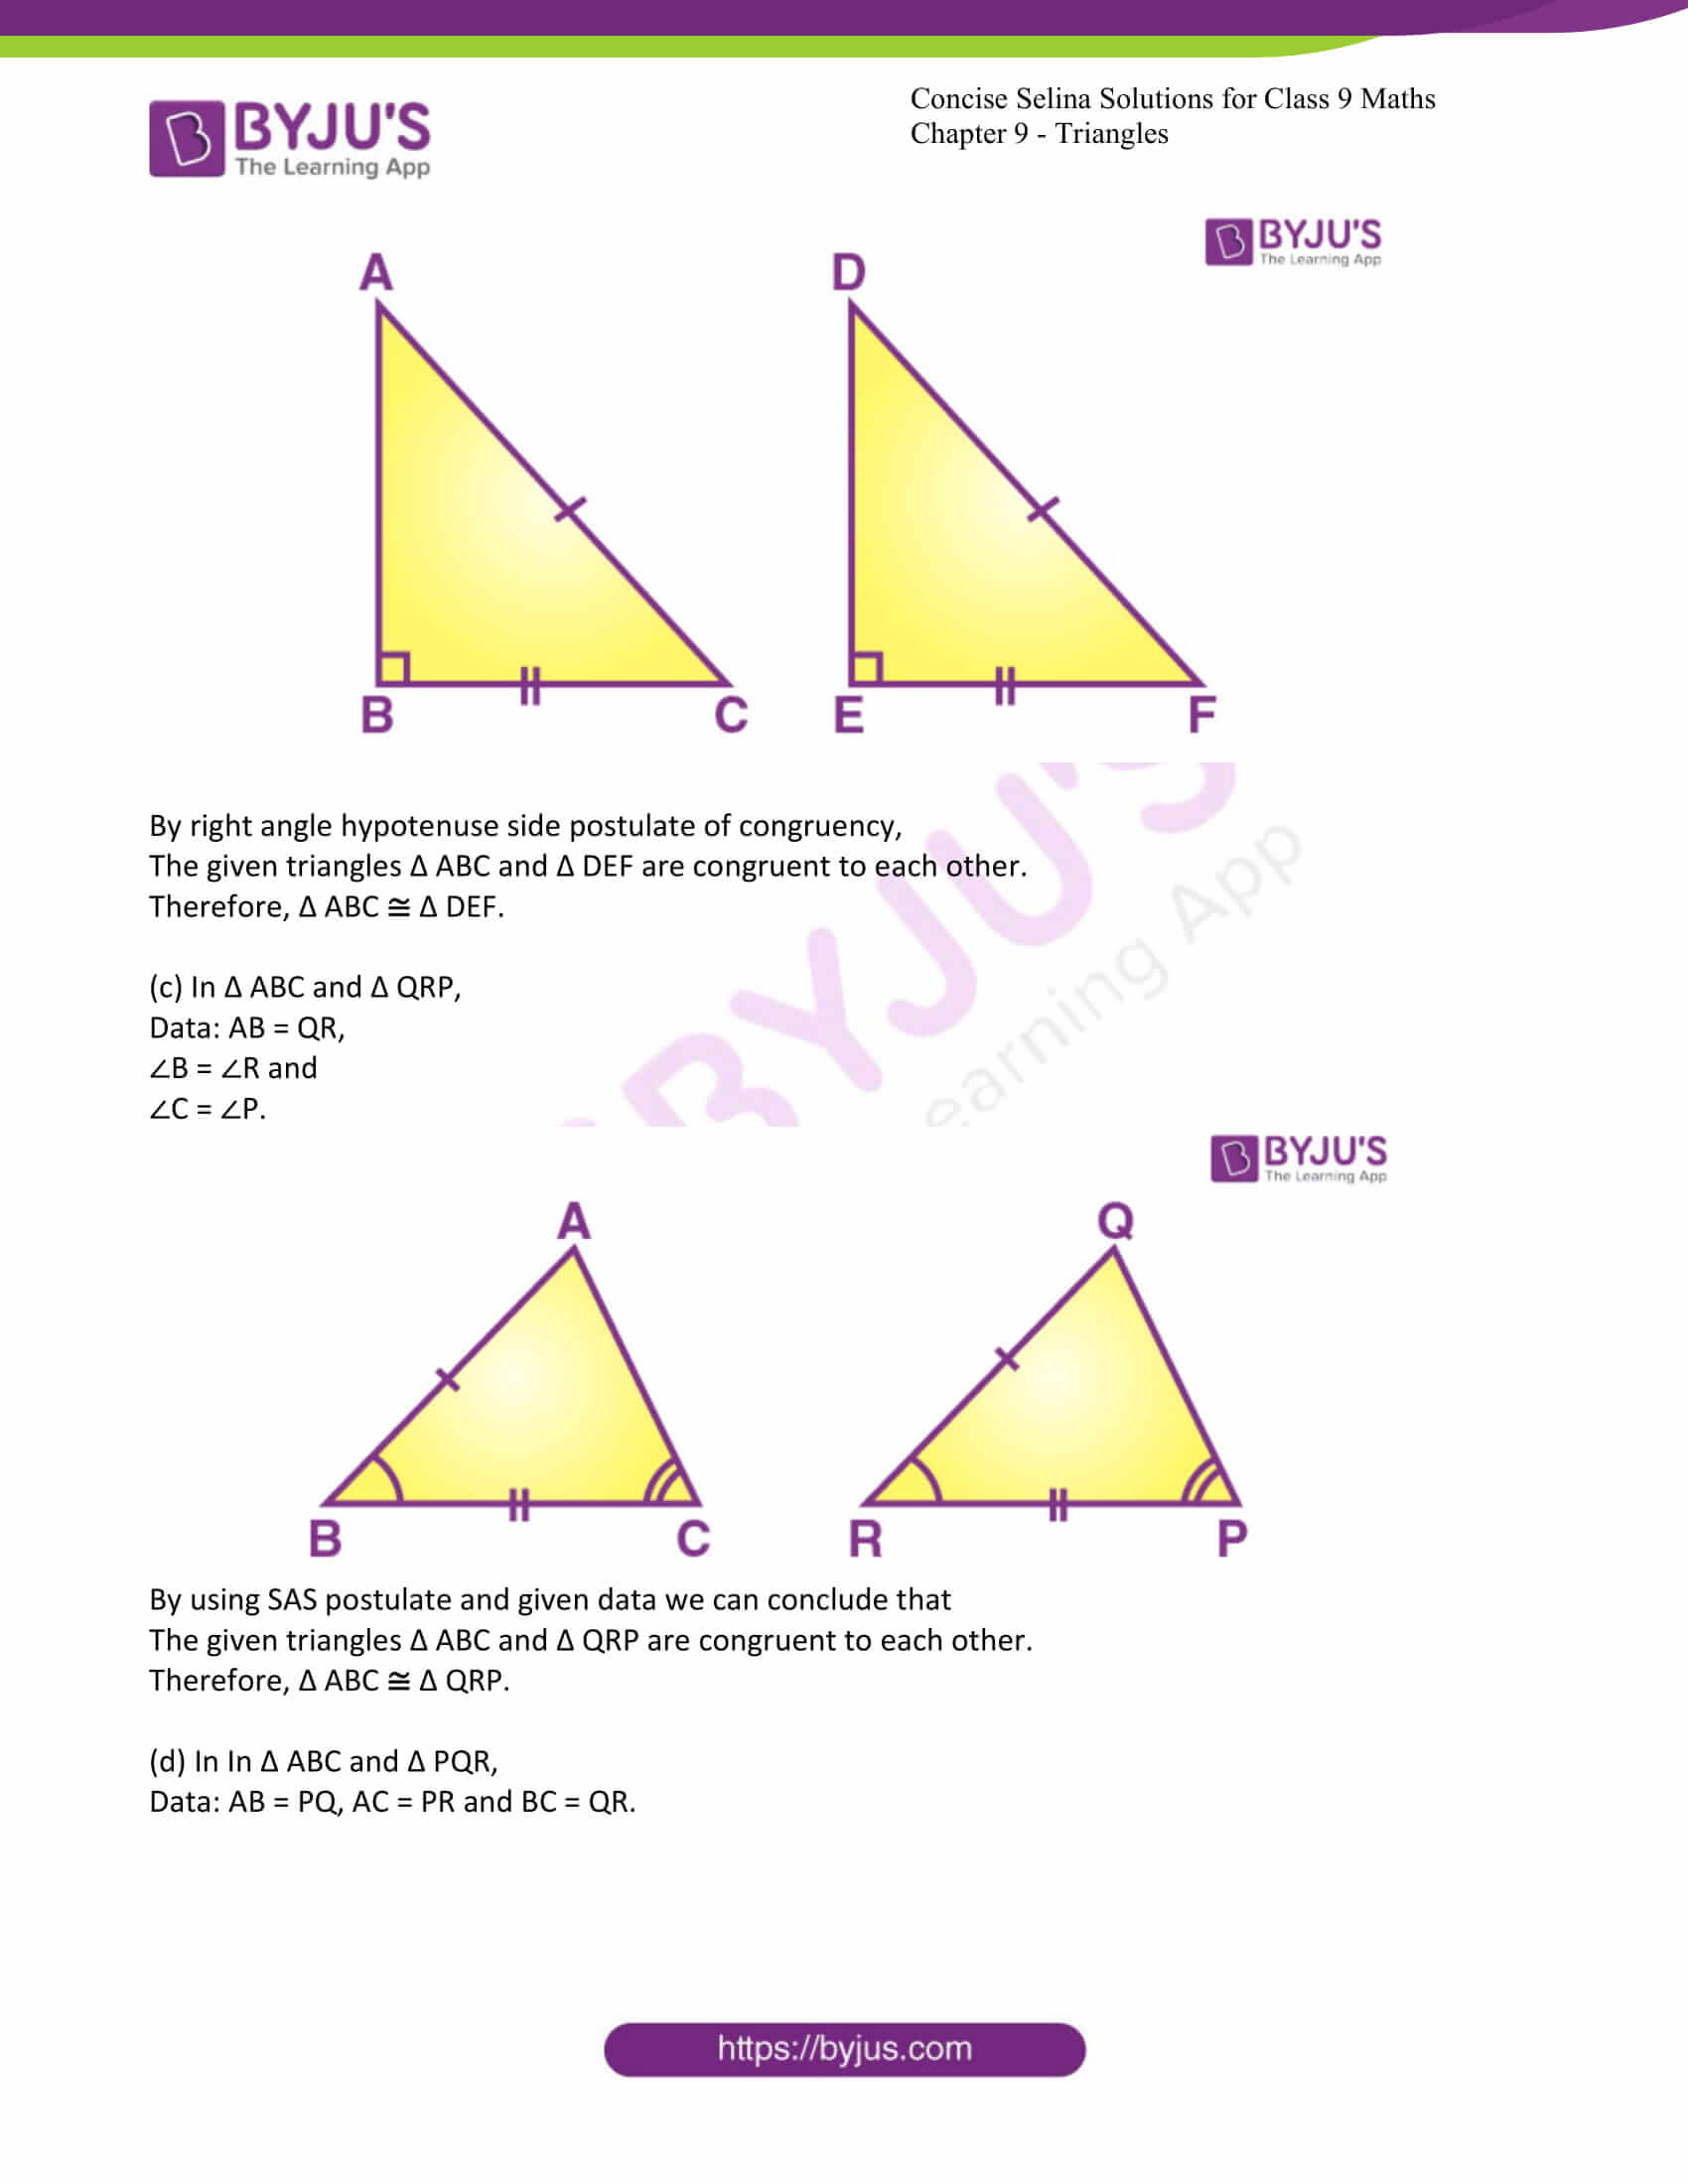 icse class 9 maths may10 selina solutions chapter 9 triangles 02